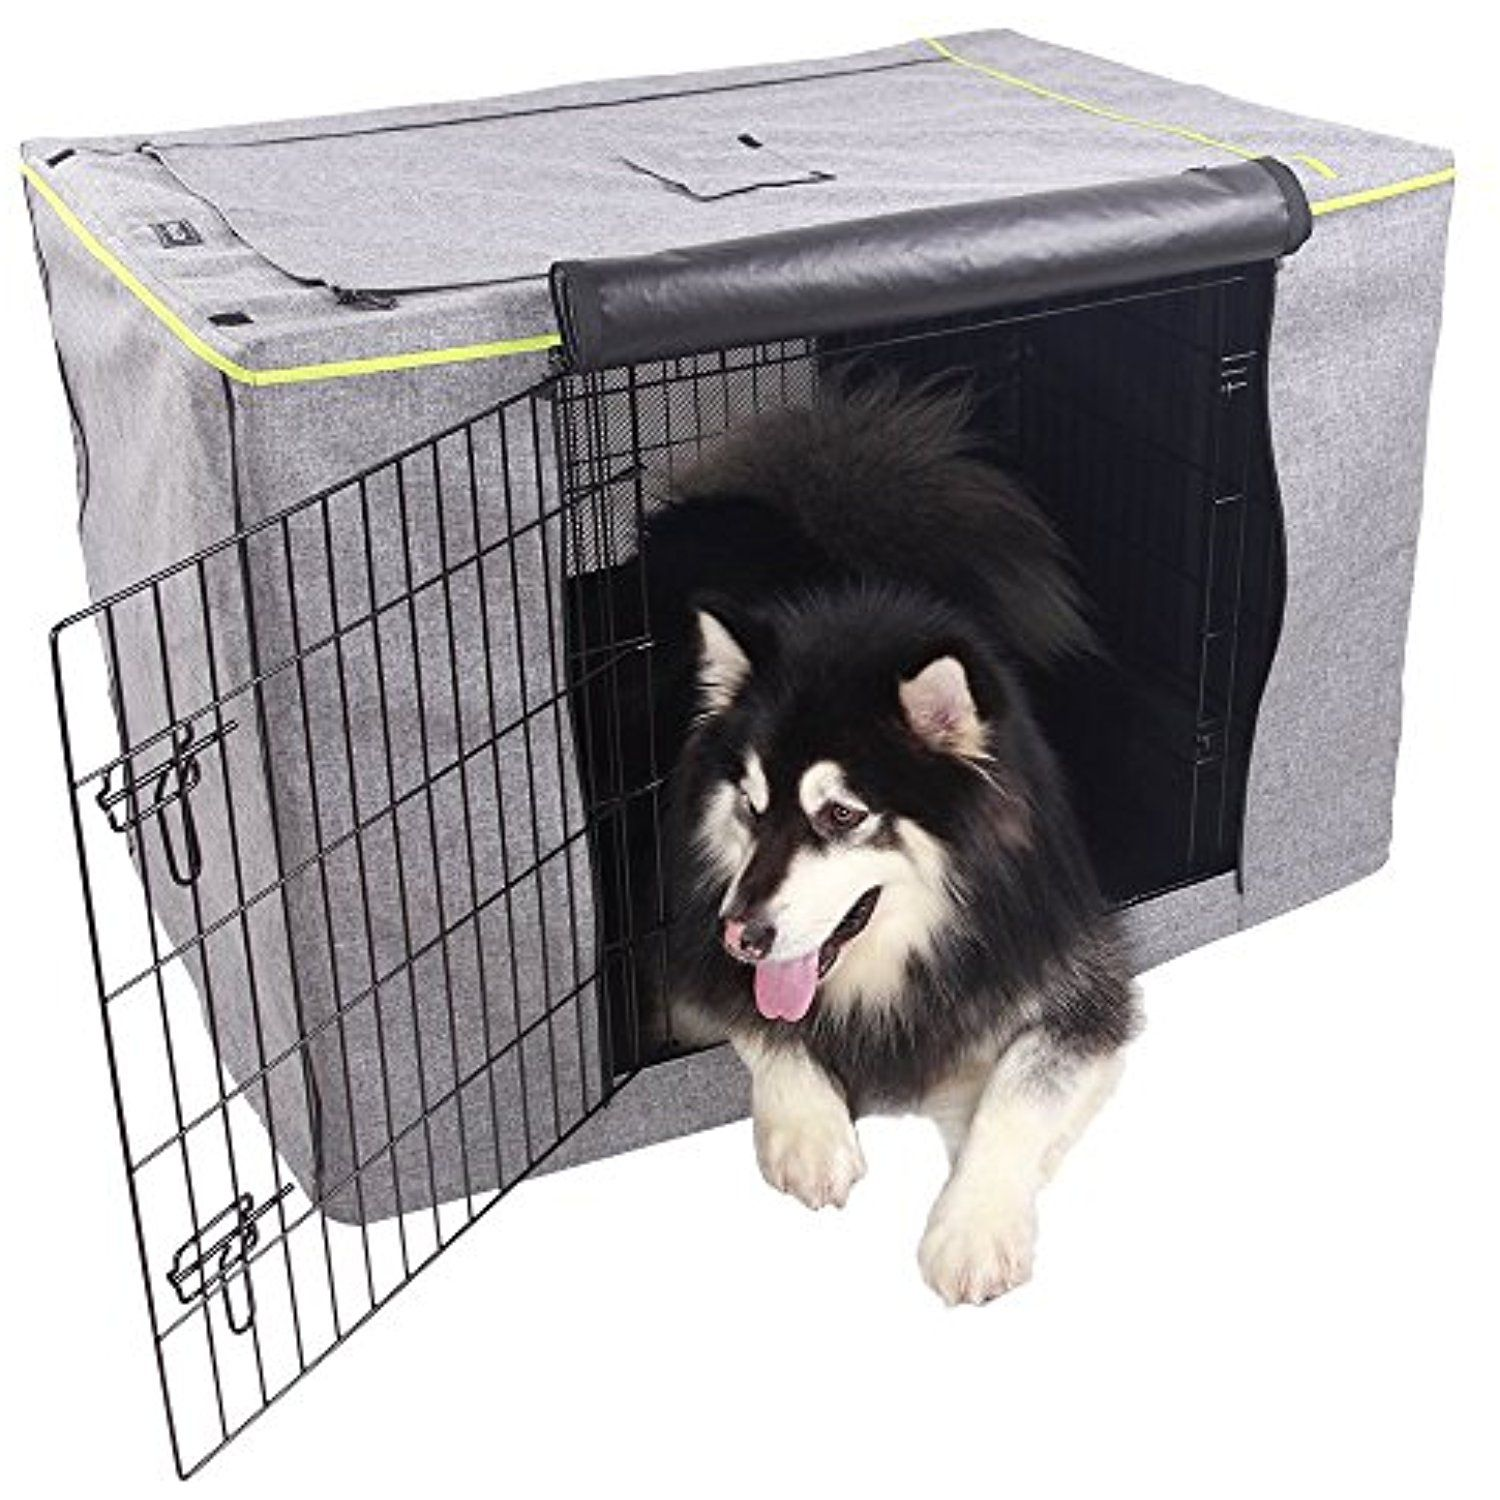 Petsfit Extra Side Door For 5000 Crate Polyester Crate Cover For 42 Inches Wire Crates Two Doors For More I Dog Crate Cover Large Dog Crate Dog Kennel Cover